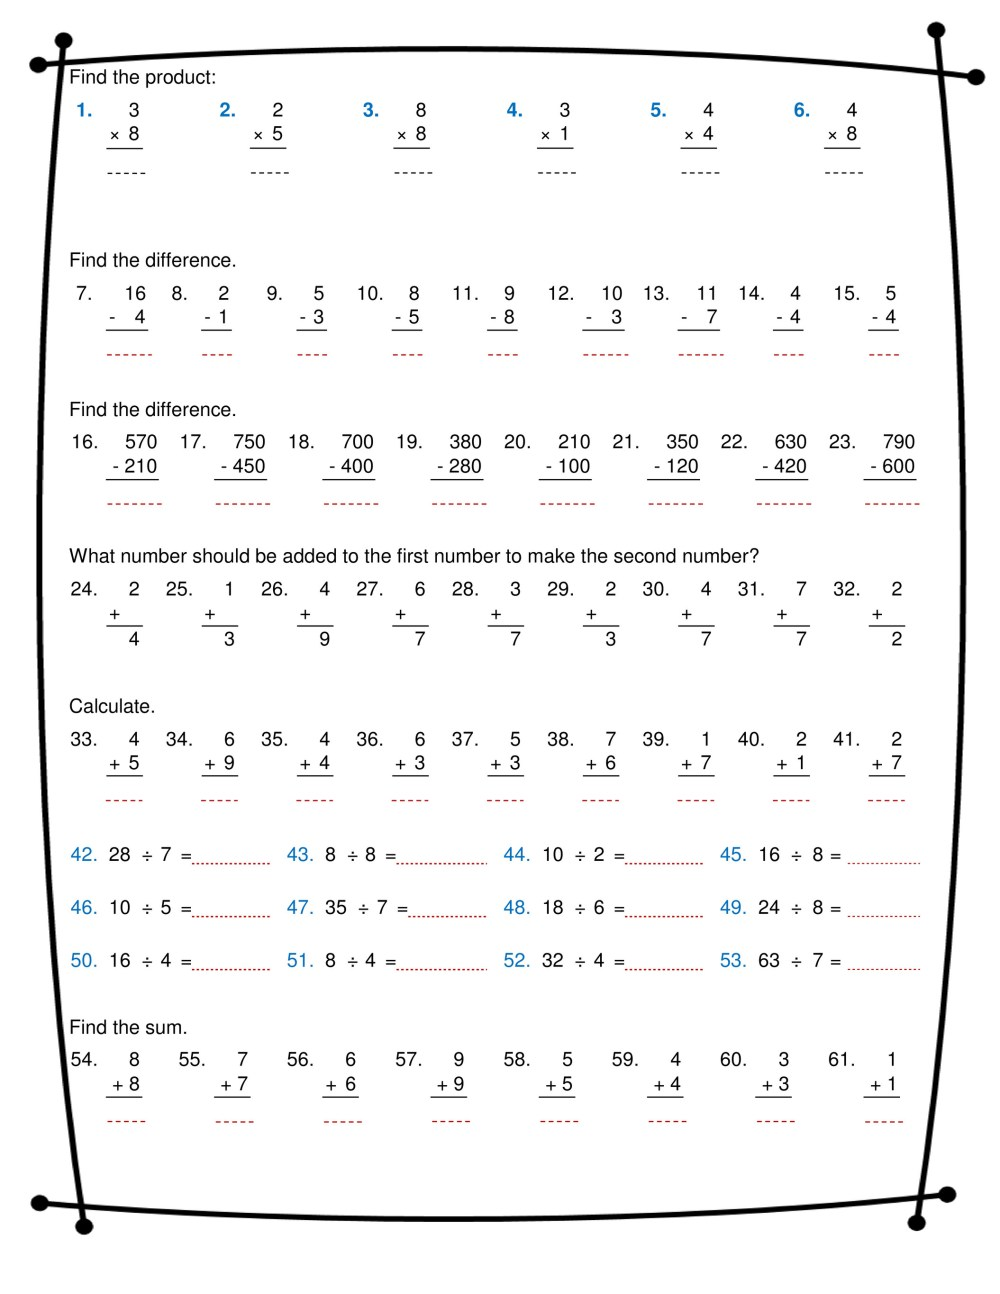 medium resolution of ninalazina - addition subtraction multiplication division worksheets pdf  Upload V2 - Page 1 - Created with Publitas.com